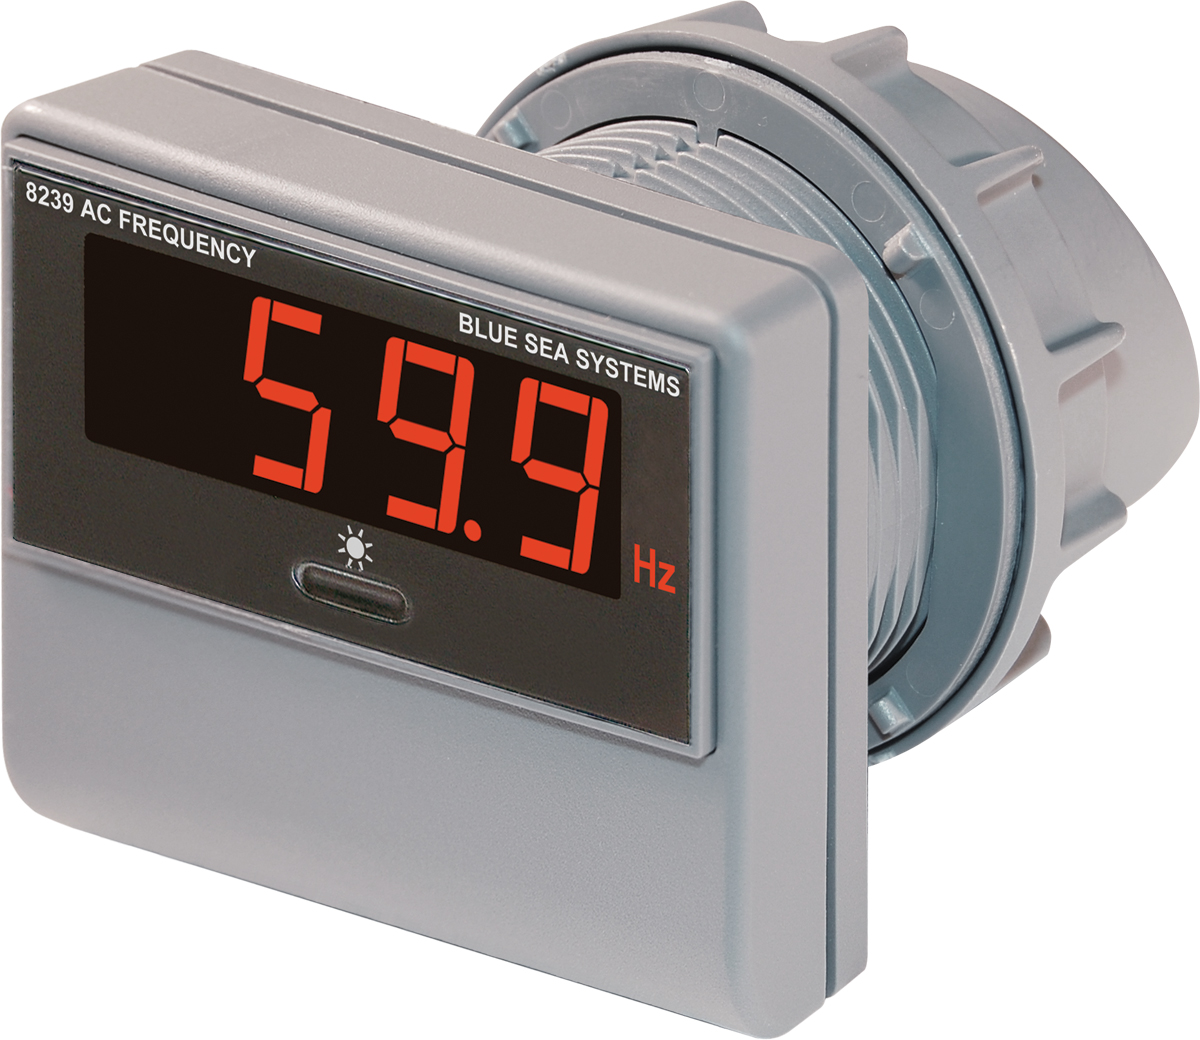 Frequency Of Ac : Blue sea systems ac digital meter frequency